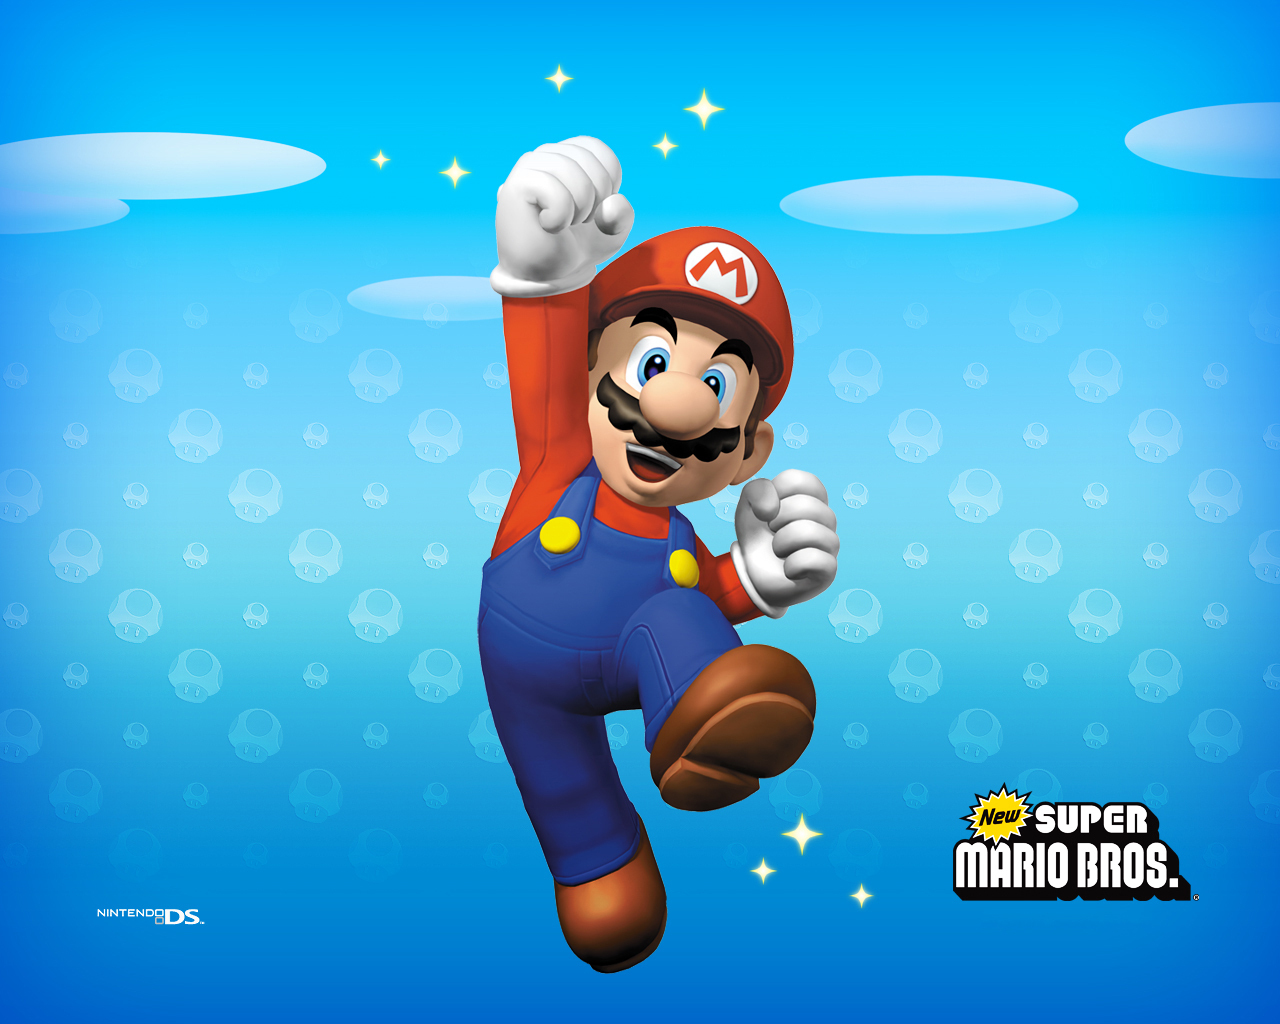 Super Mario Bros. New Super Mario Brothers Wallpaper